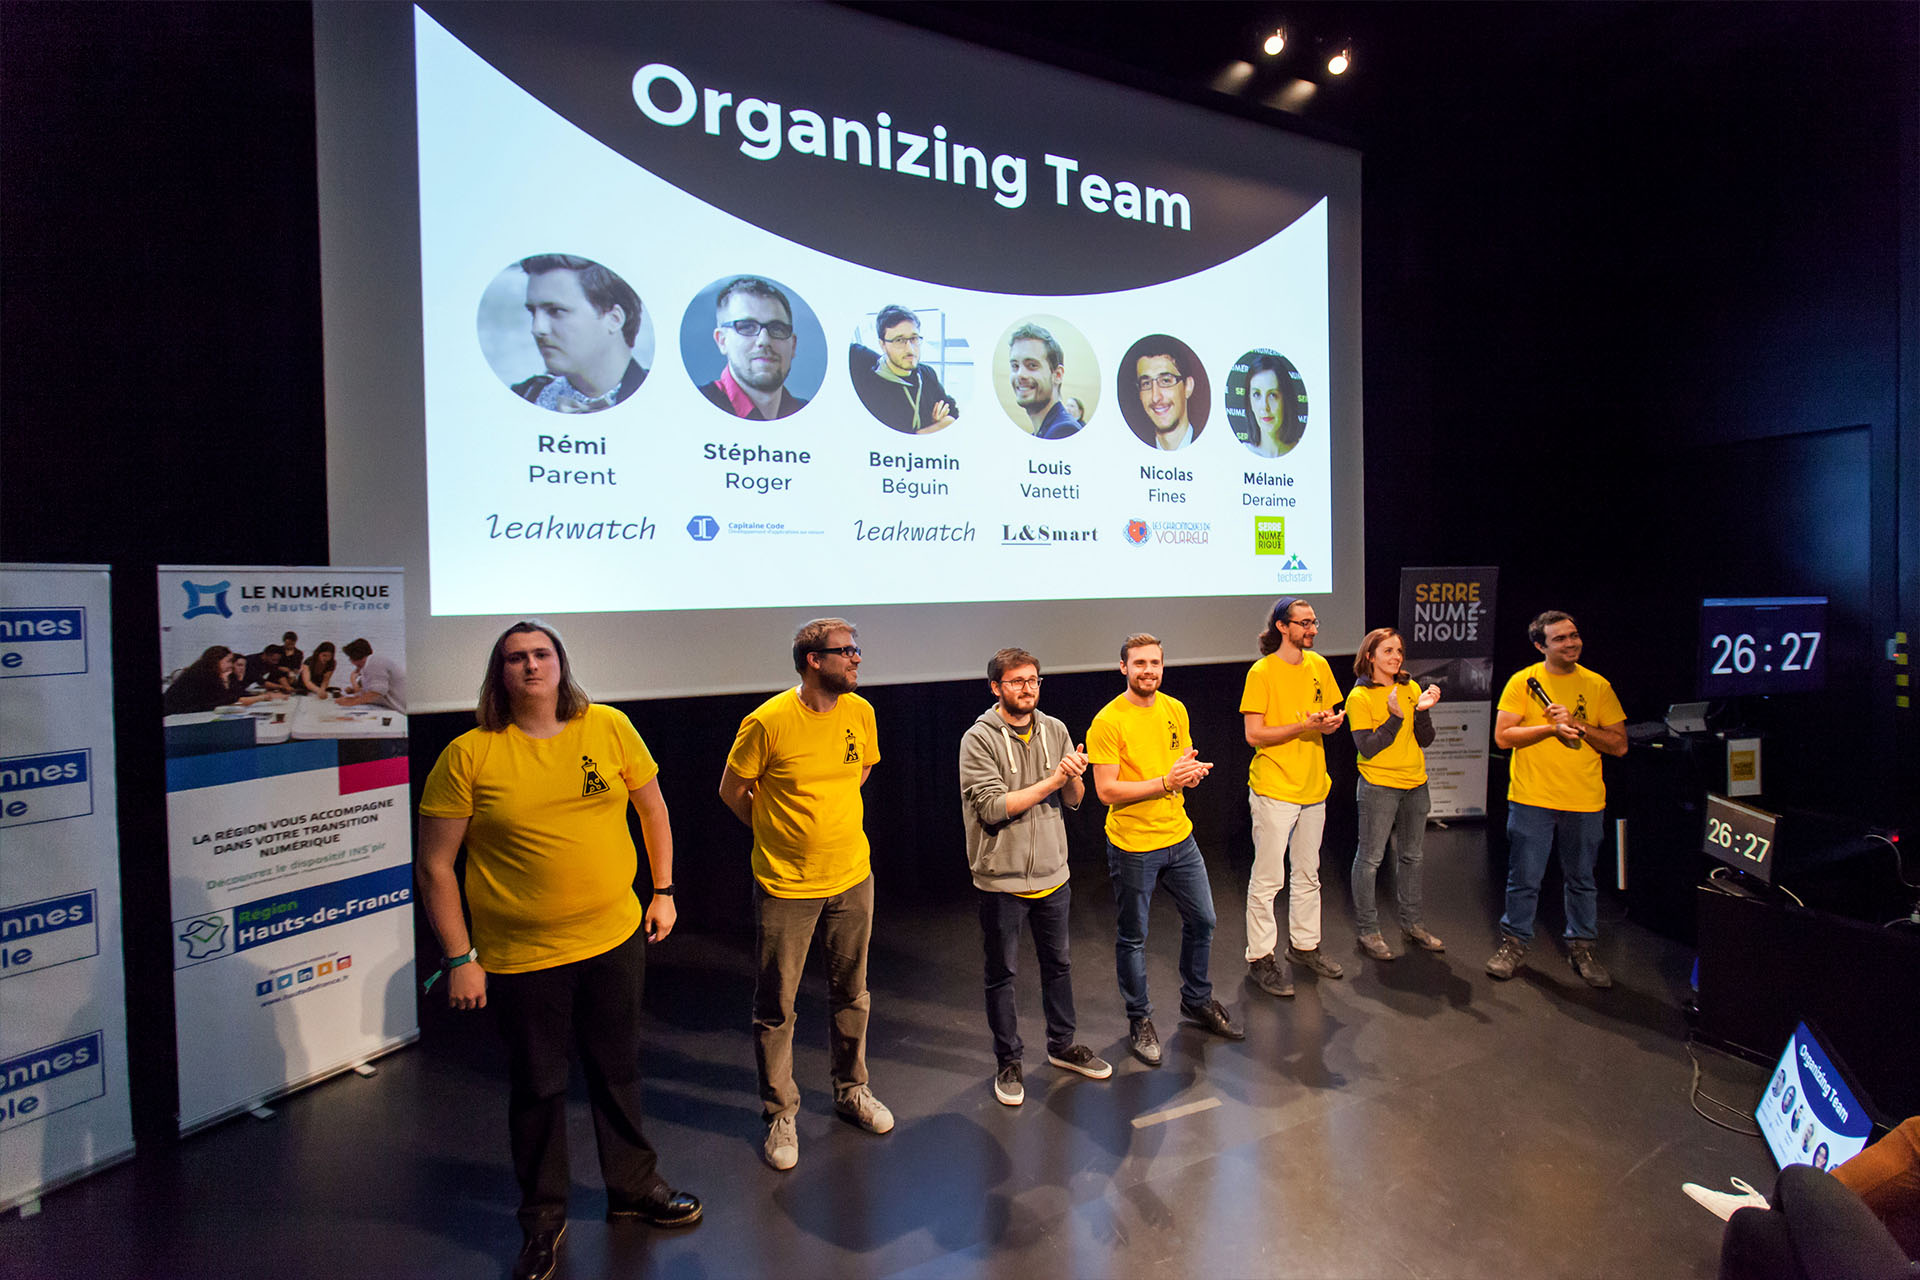 The organizing team, without them nothing would have been possible